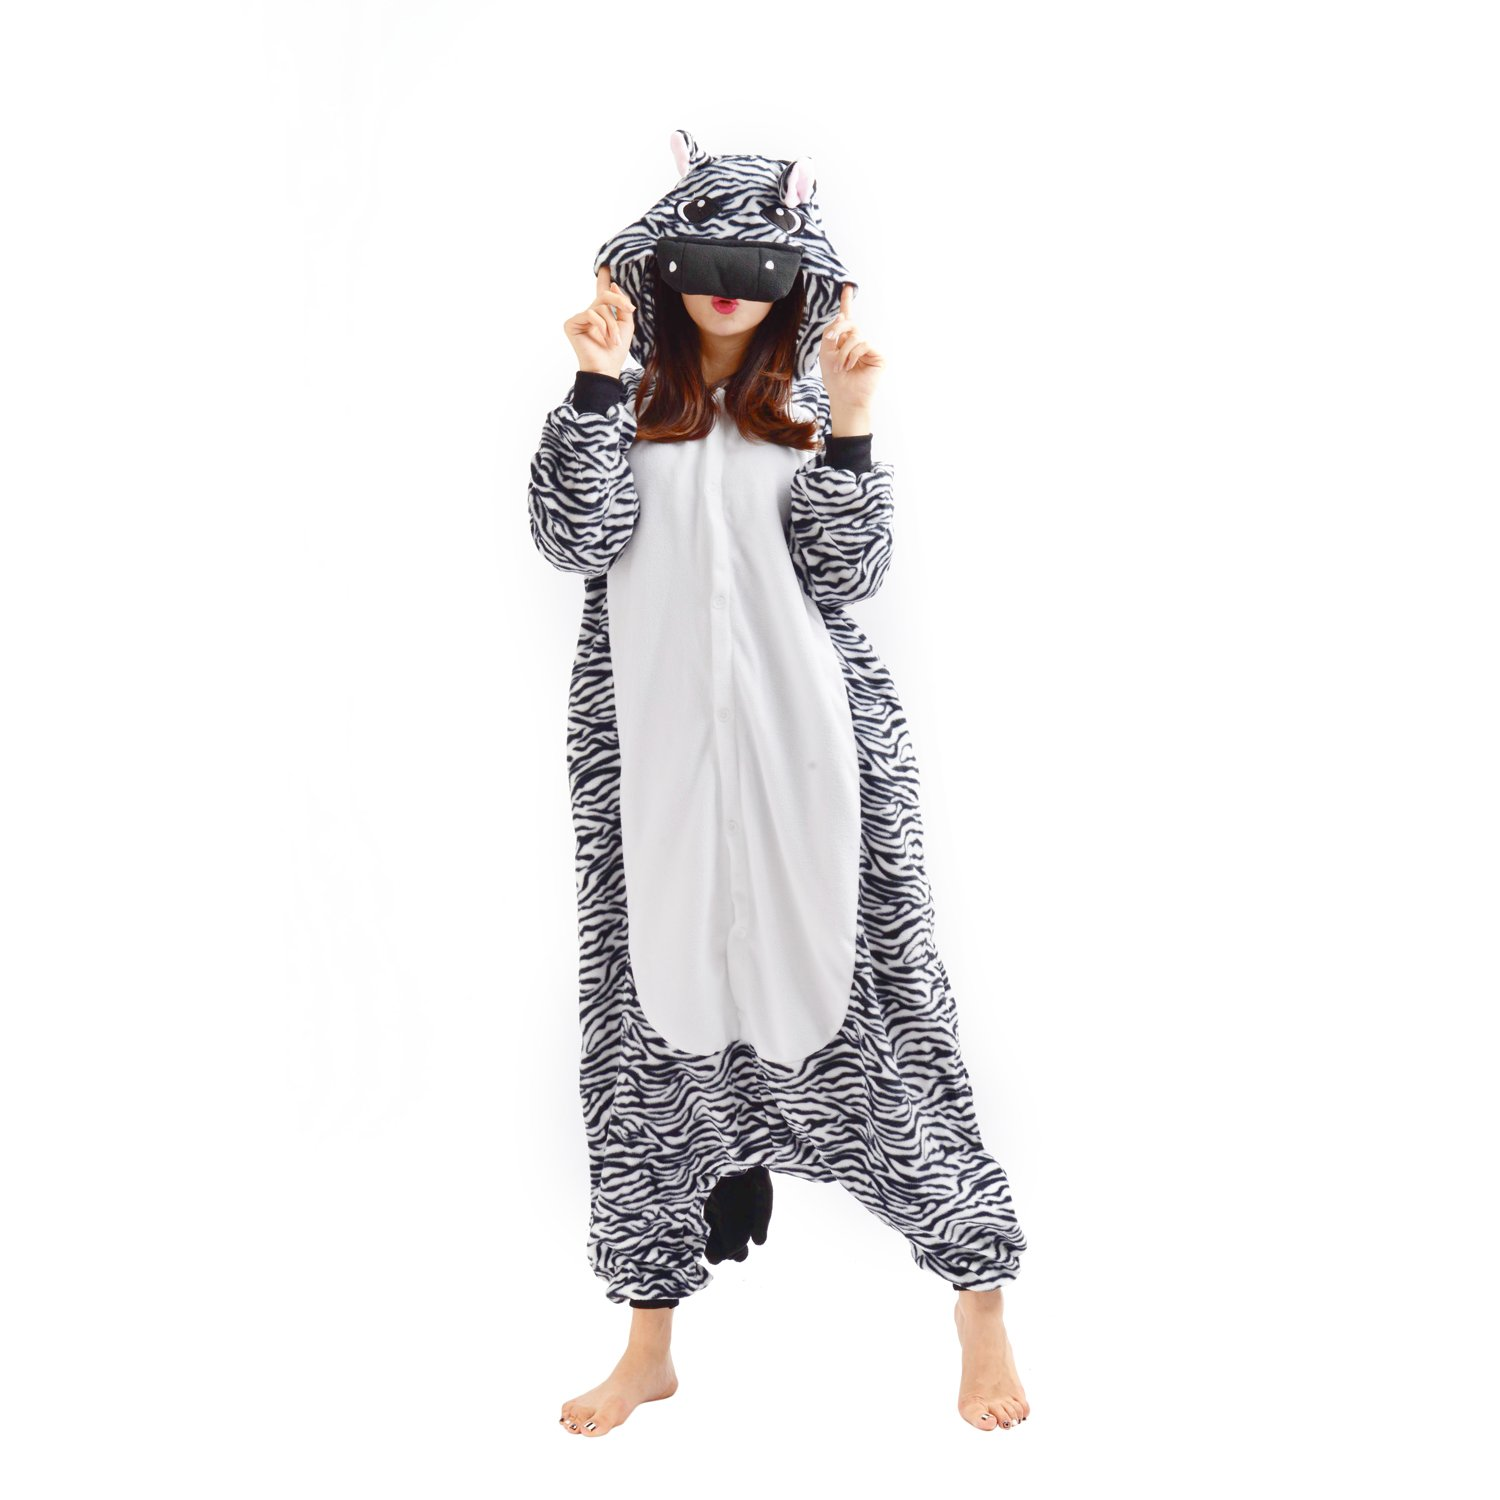 Casa Adult Anime Sleepsuit Pajamas Costume Animal Onesie Zebra Cosplay Size XL